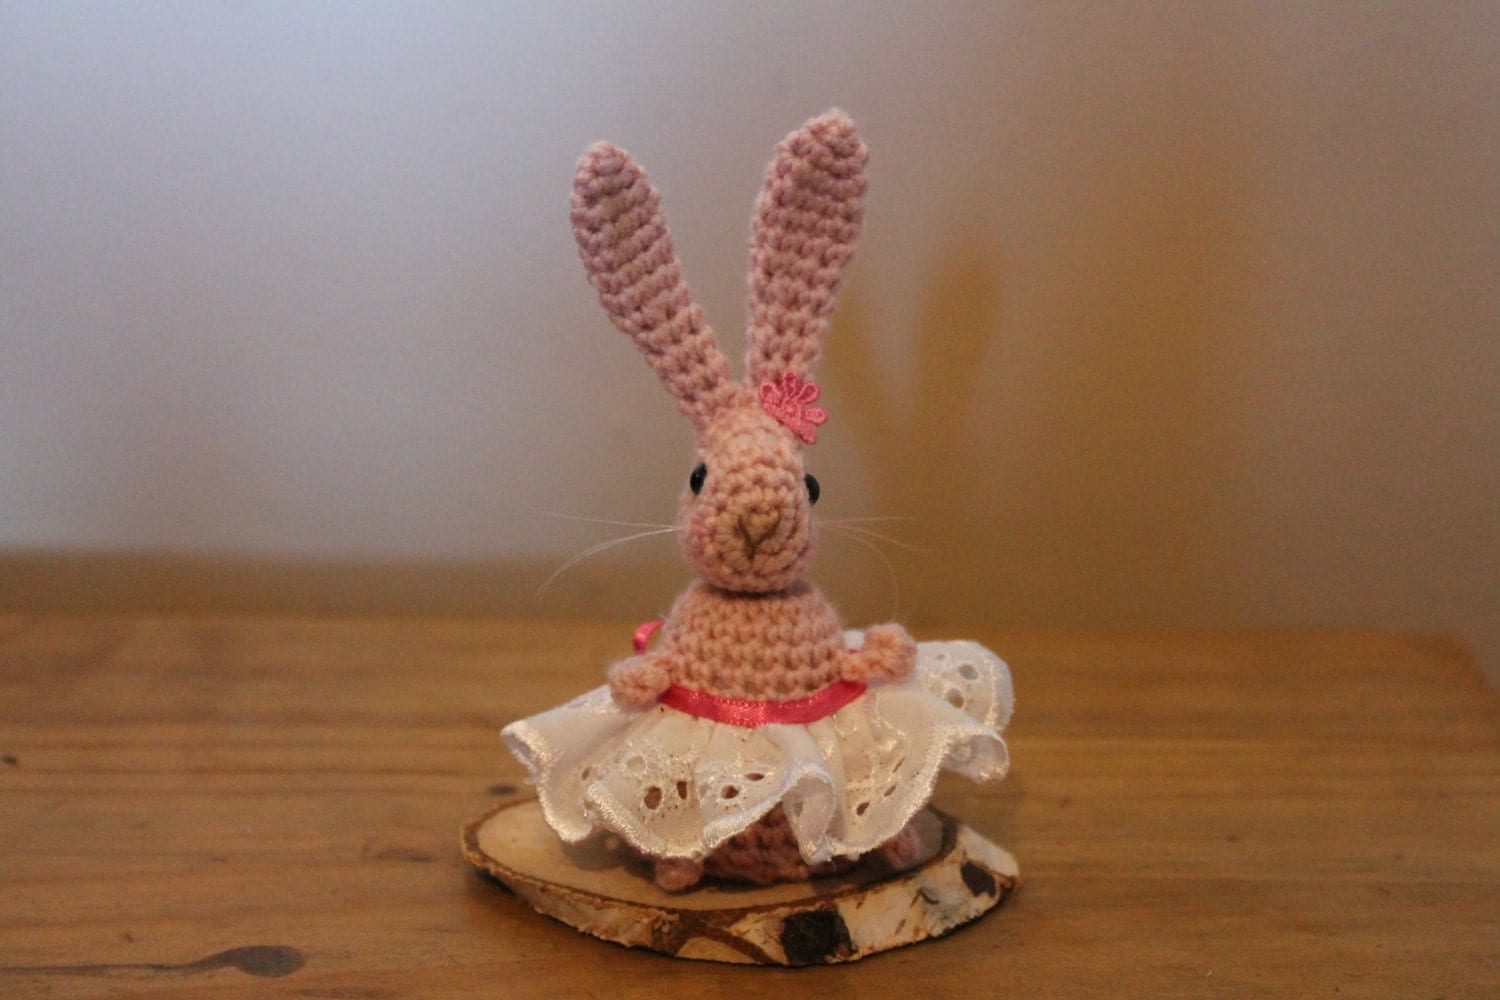 Crochet rabbit amigurumi home decor flower faux taxidermy for Rabbit decorations home